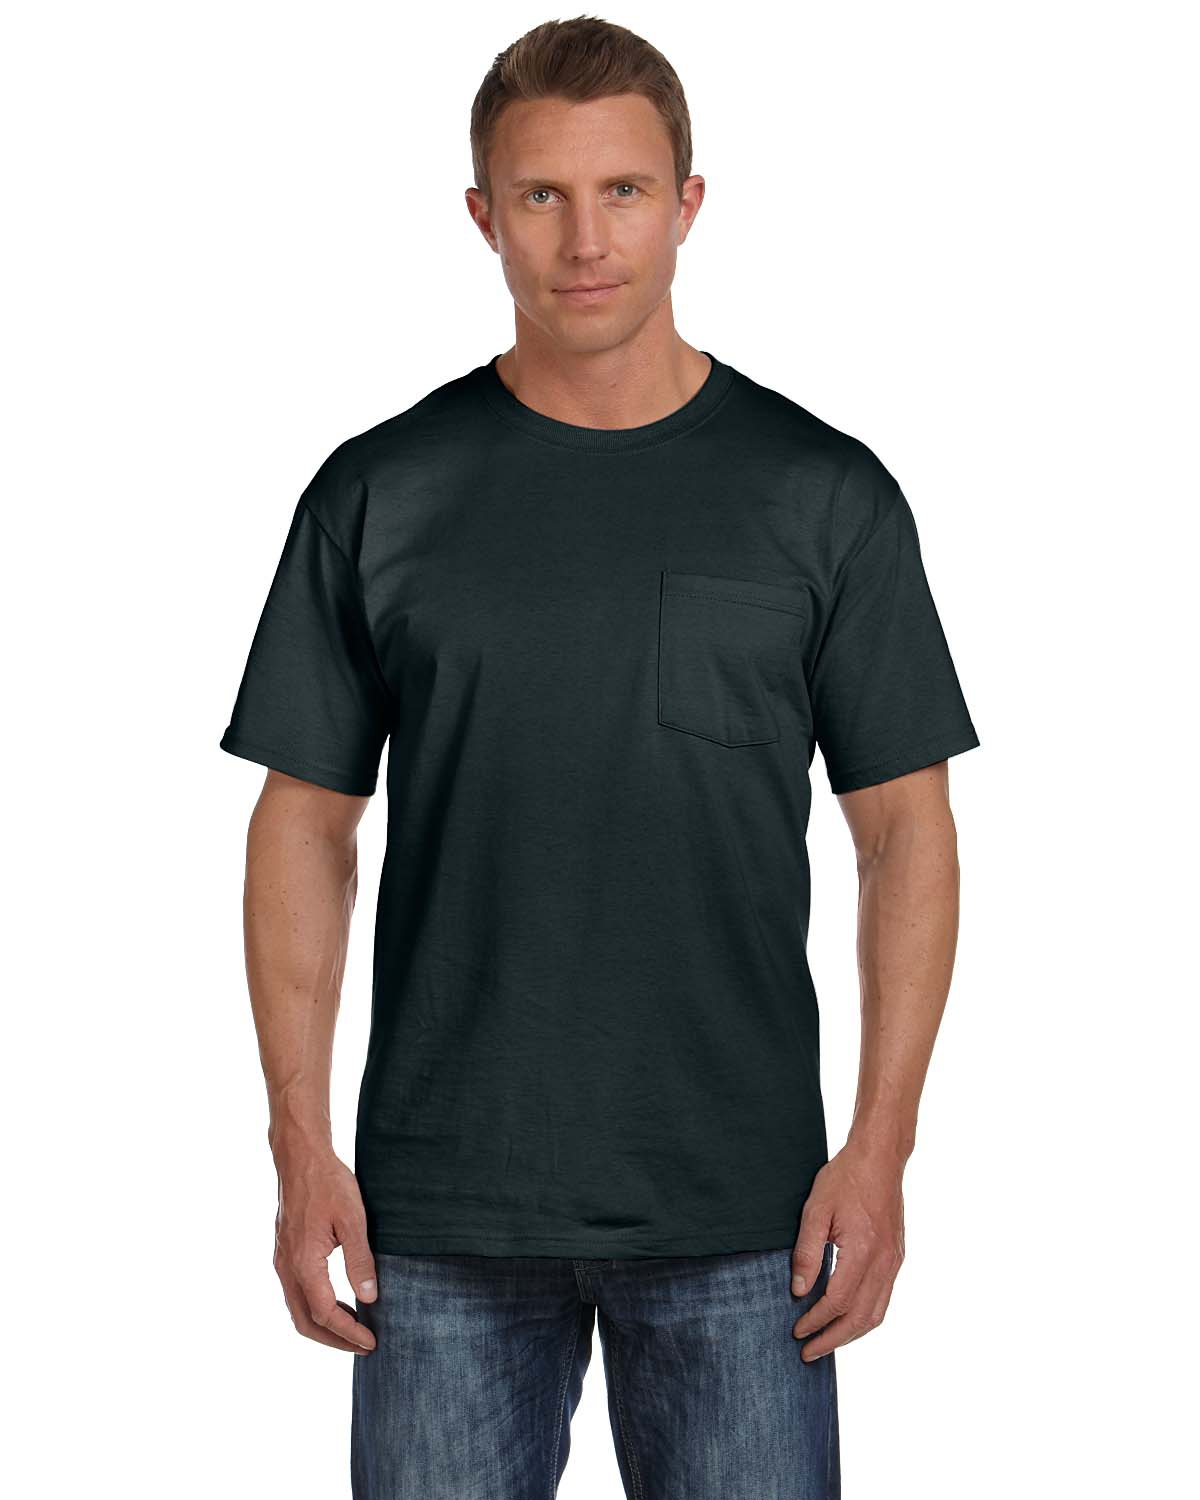 b039673b Fruit of the Loom HD Cotton Tee | 3931P Adult Pocket T-Shirt ...